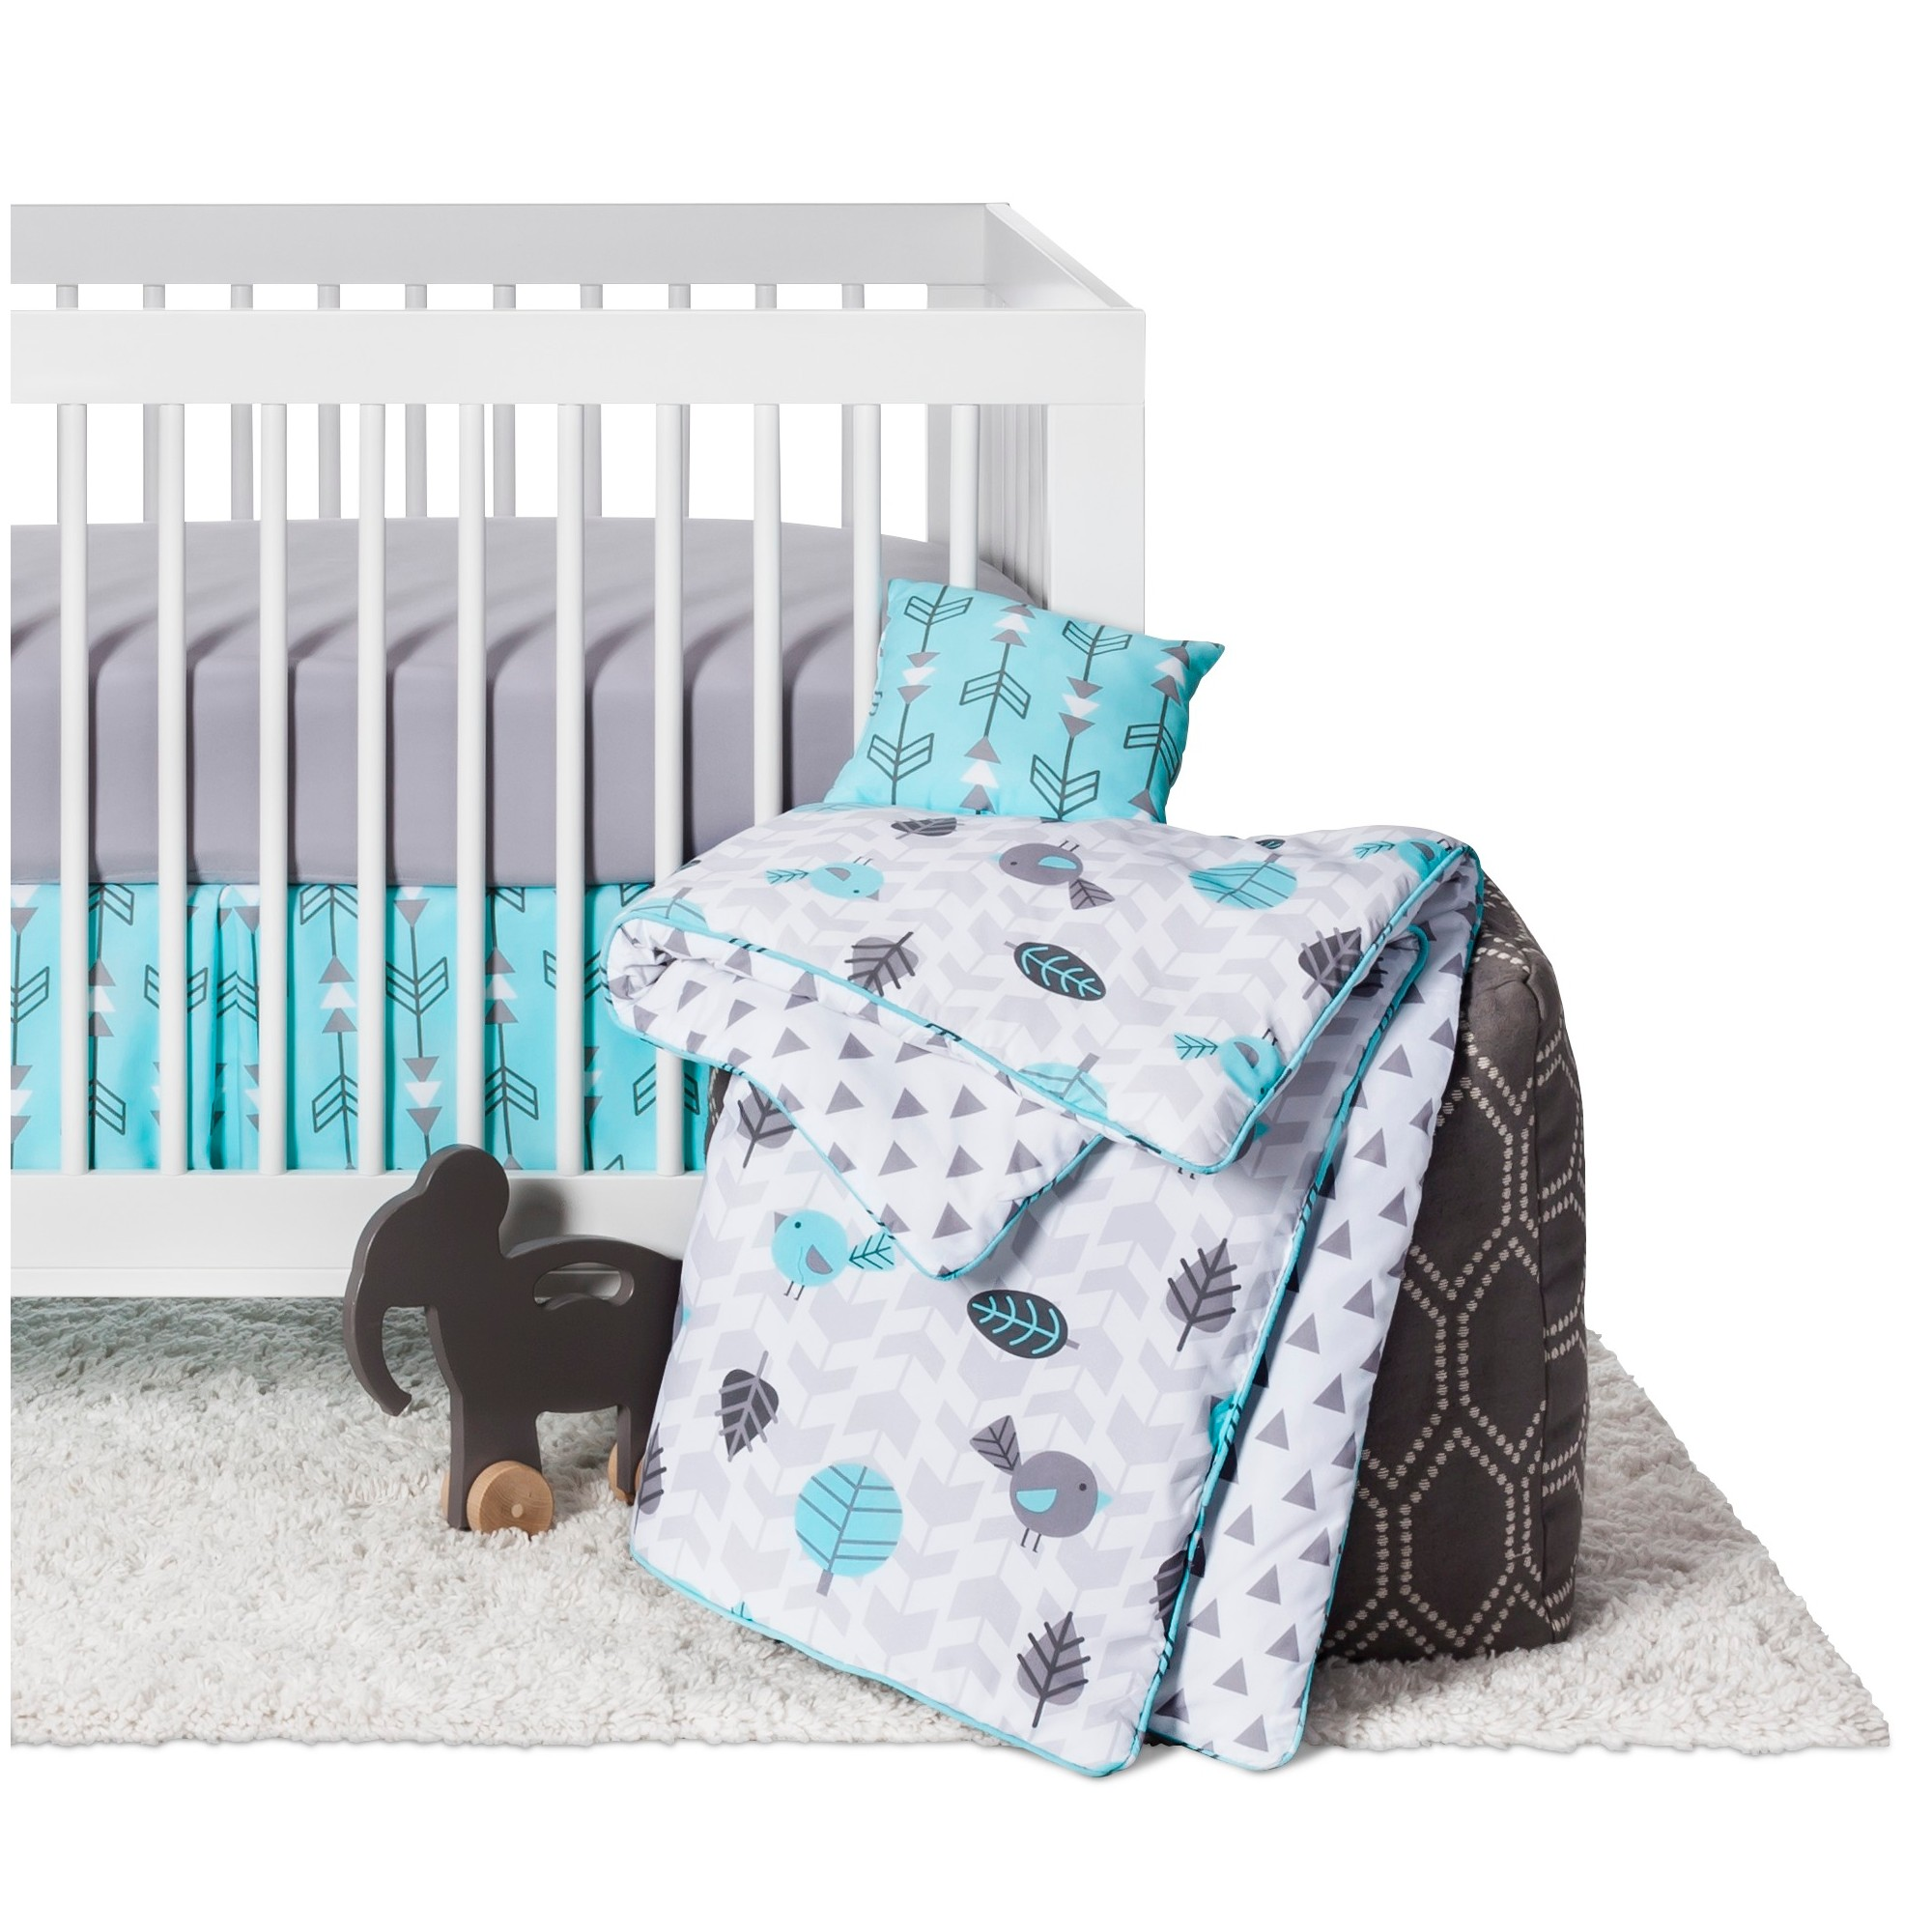 lamb jojo cribs little bedding picture by designs of sweet decoration crib baby